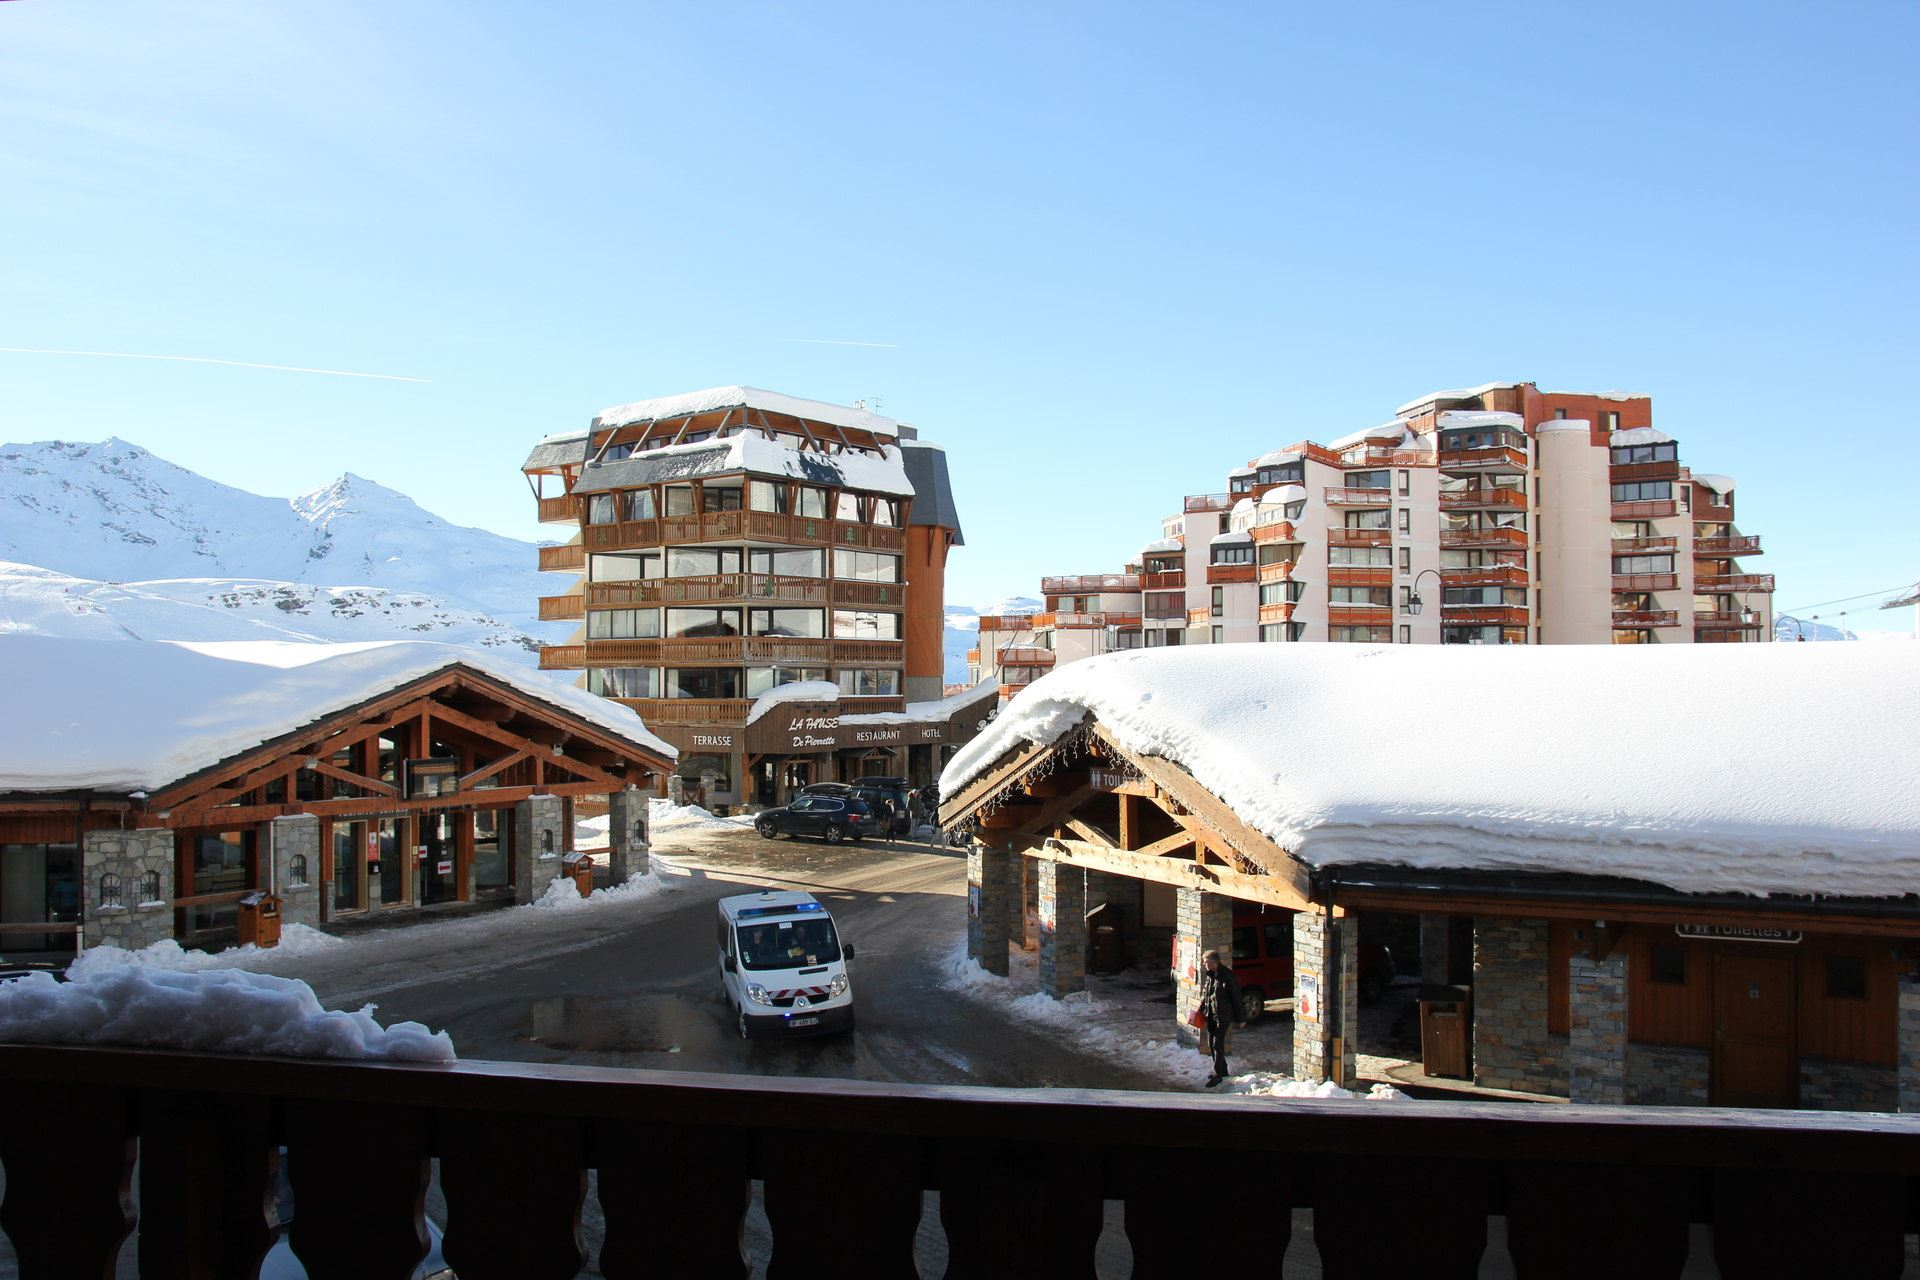 CHALET LES TROLLES 3 / APARTMENT 6 ROOMS 10 PERSONS - 3 SILVER SNOWFLAKES - CI